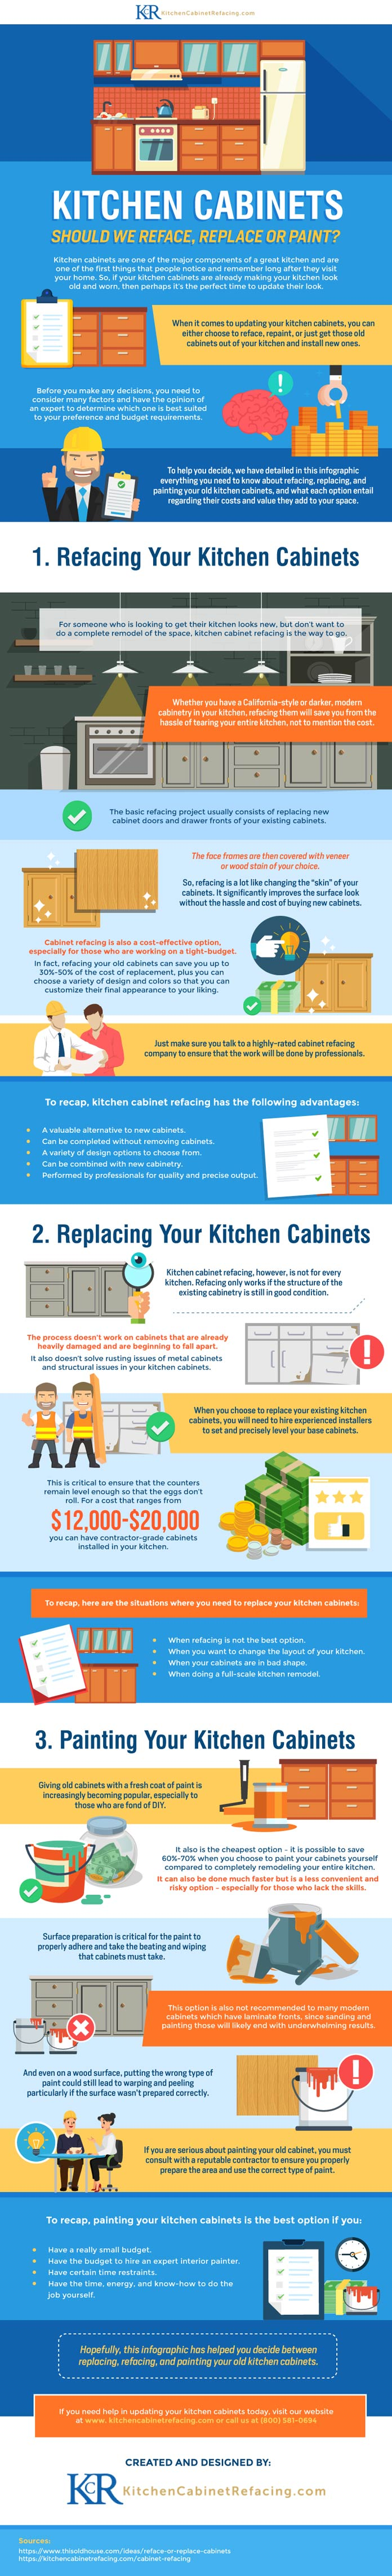 Kitchen Cabinets - Should we Reface, Replace or Paint